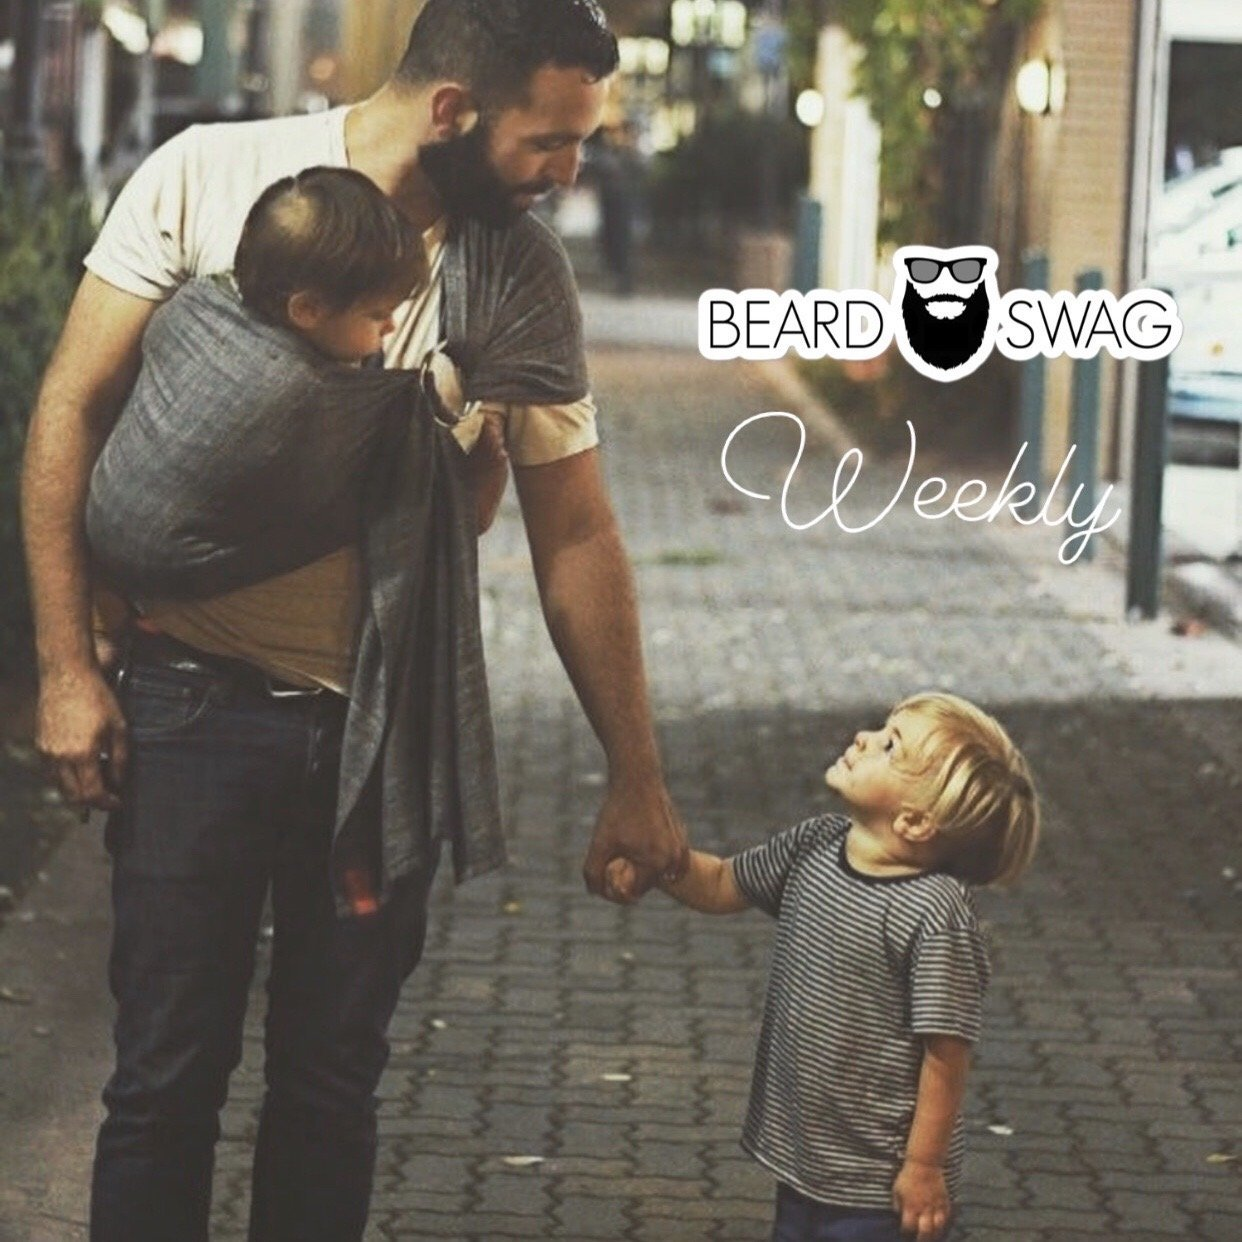 Beard Swag Weekly - Dads | Beard Swag